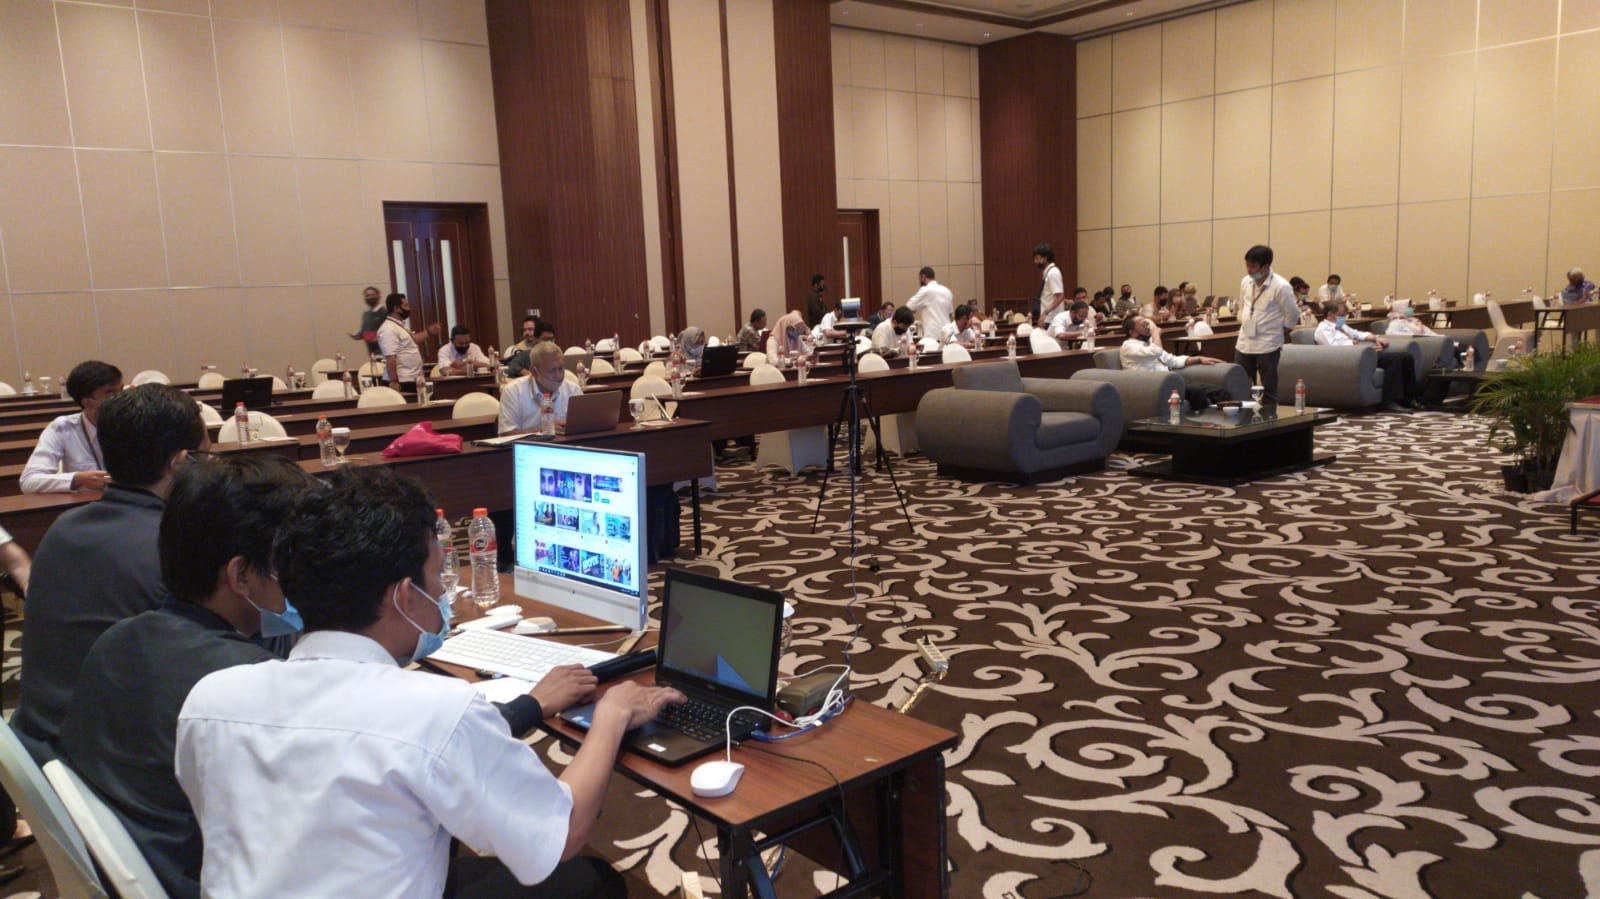 Atria Hotel Gading Serpong video conference